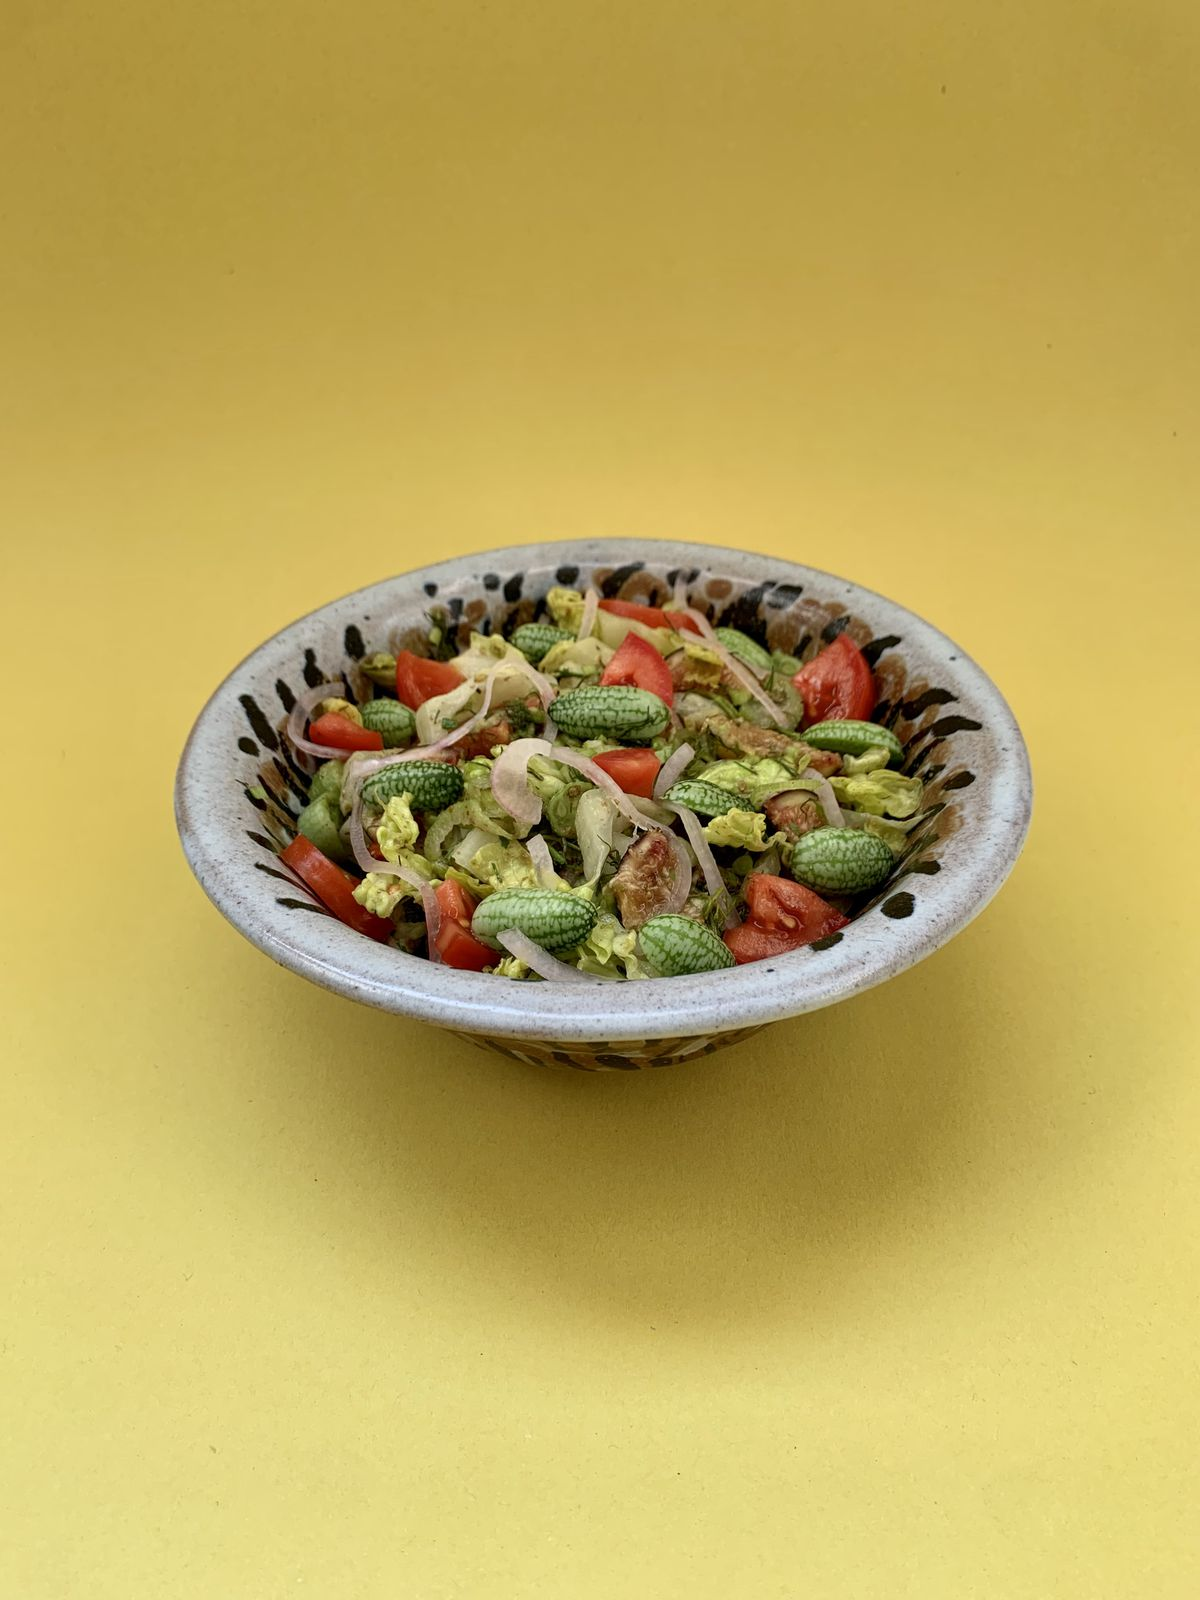 A bowl filled with a salad of romaine lettuce, tomato, fig, and watermelon gherkin on a yellow background.